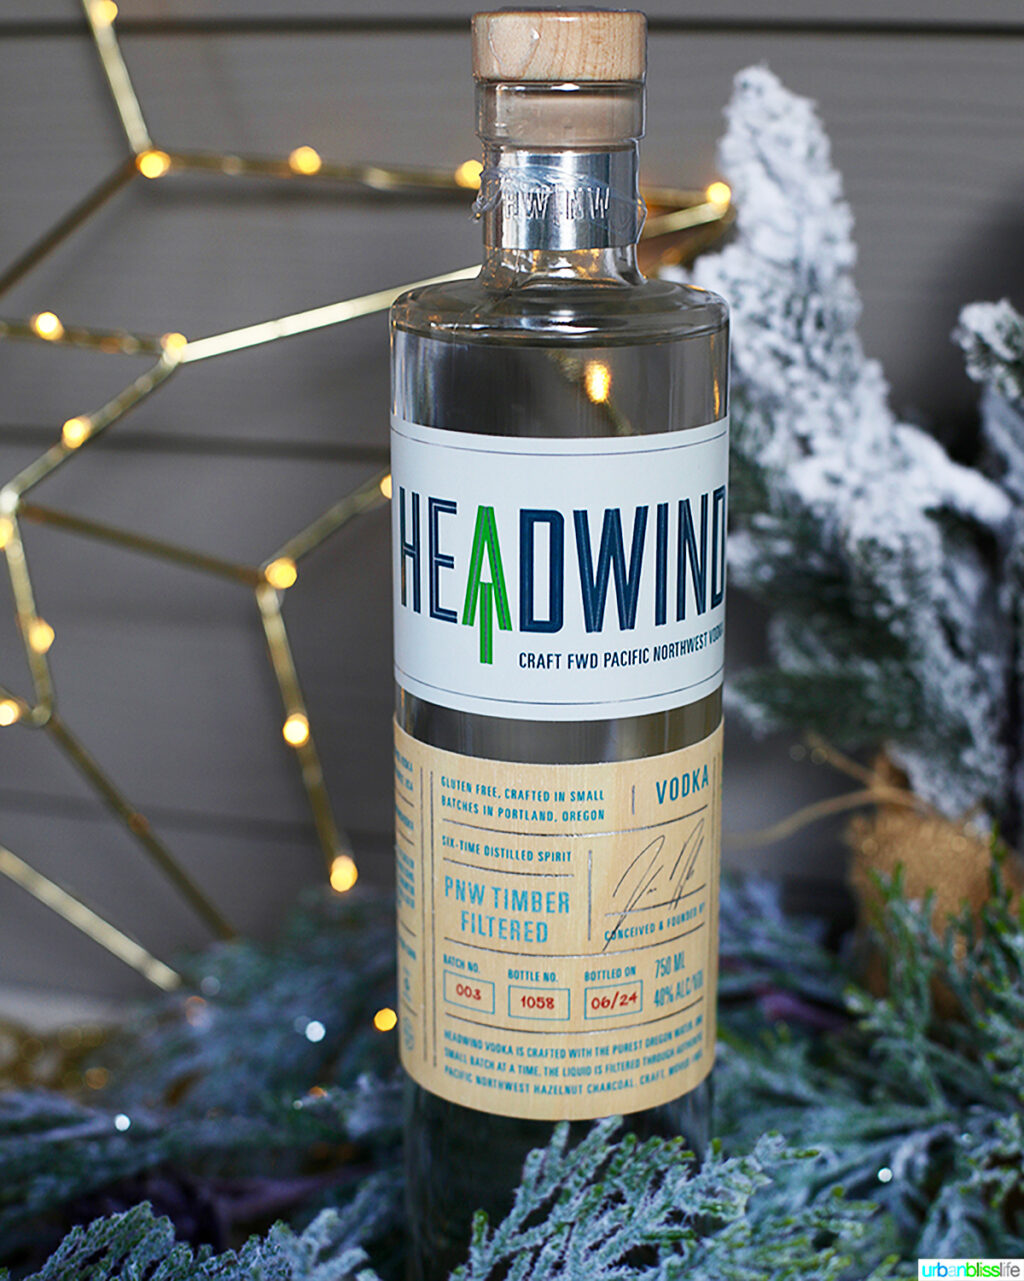 bottle of Headwind Vodka in holiday setting